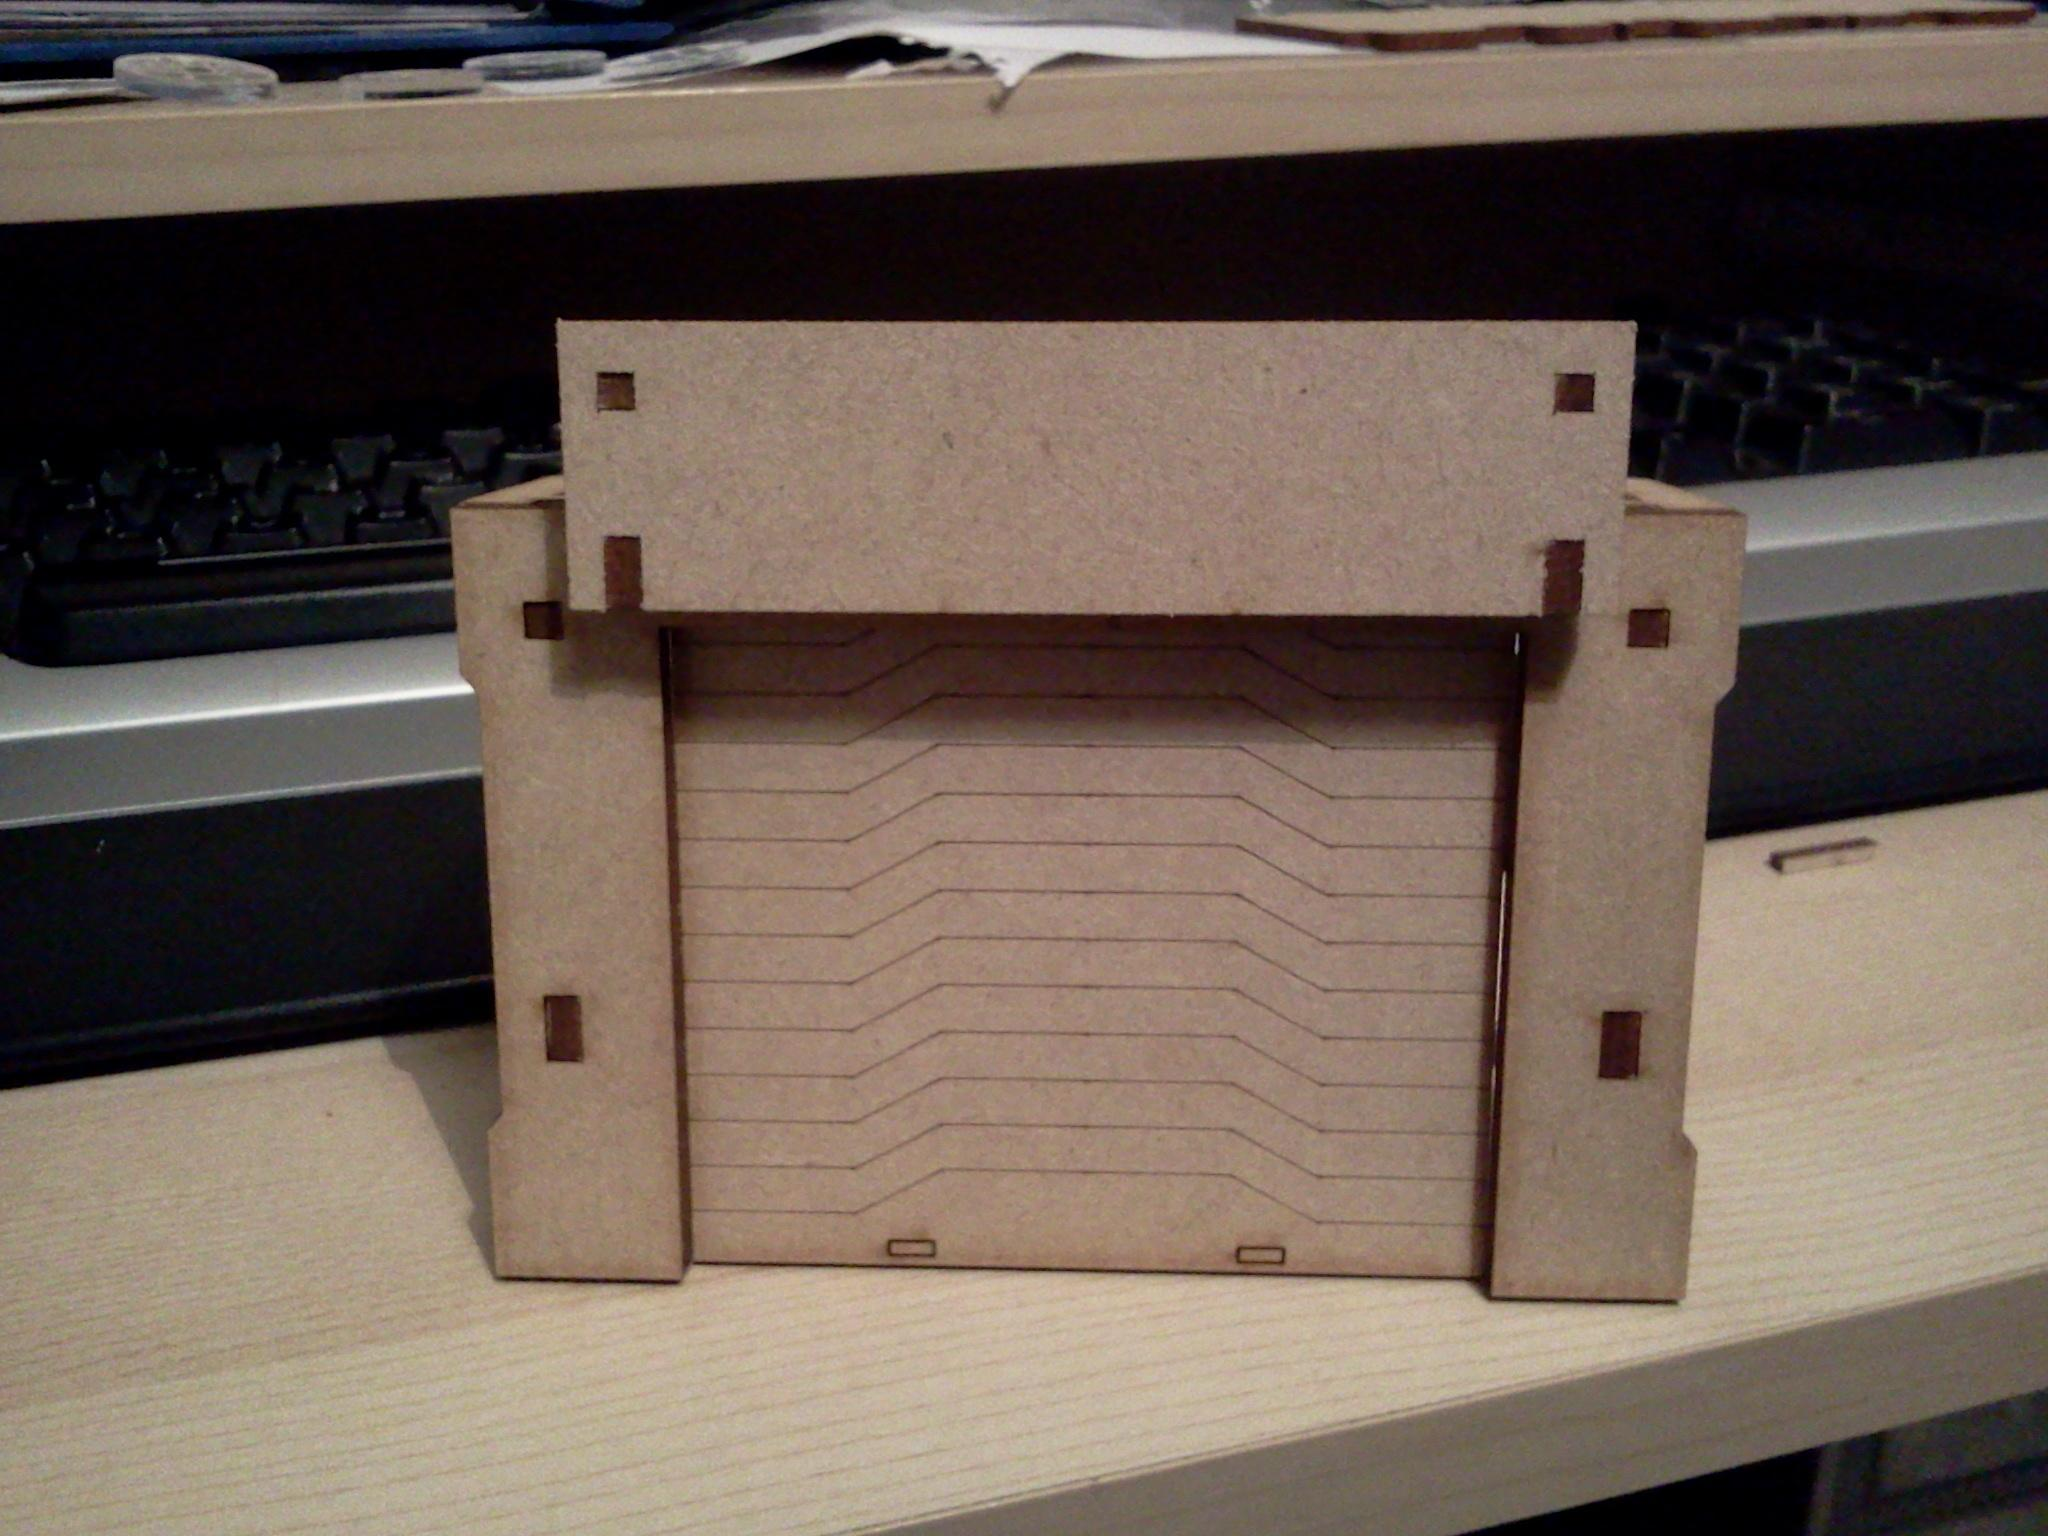 The MDF part of the security checkpoint prototype. The top panel will be an engraved sign, there'll be an option to customise the sign with your own propoganda, logos, labels etc